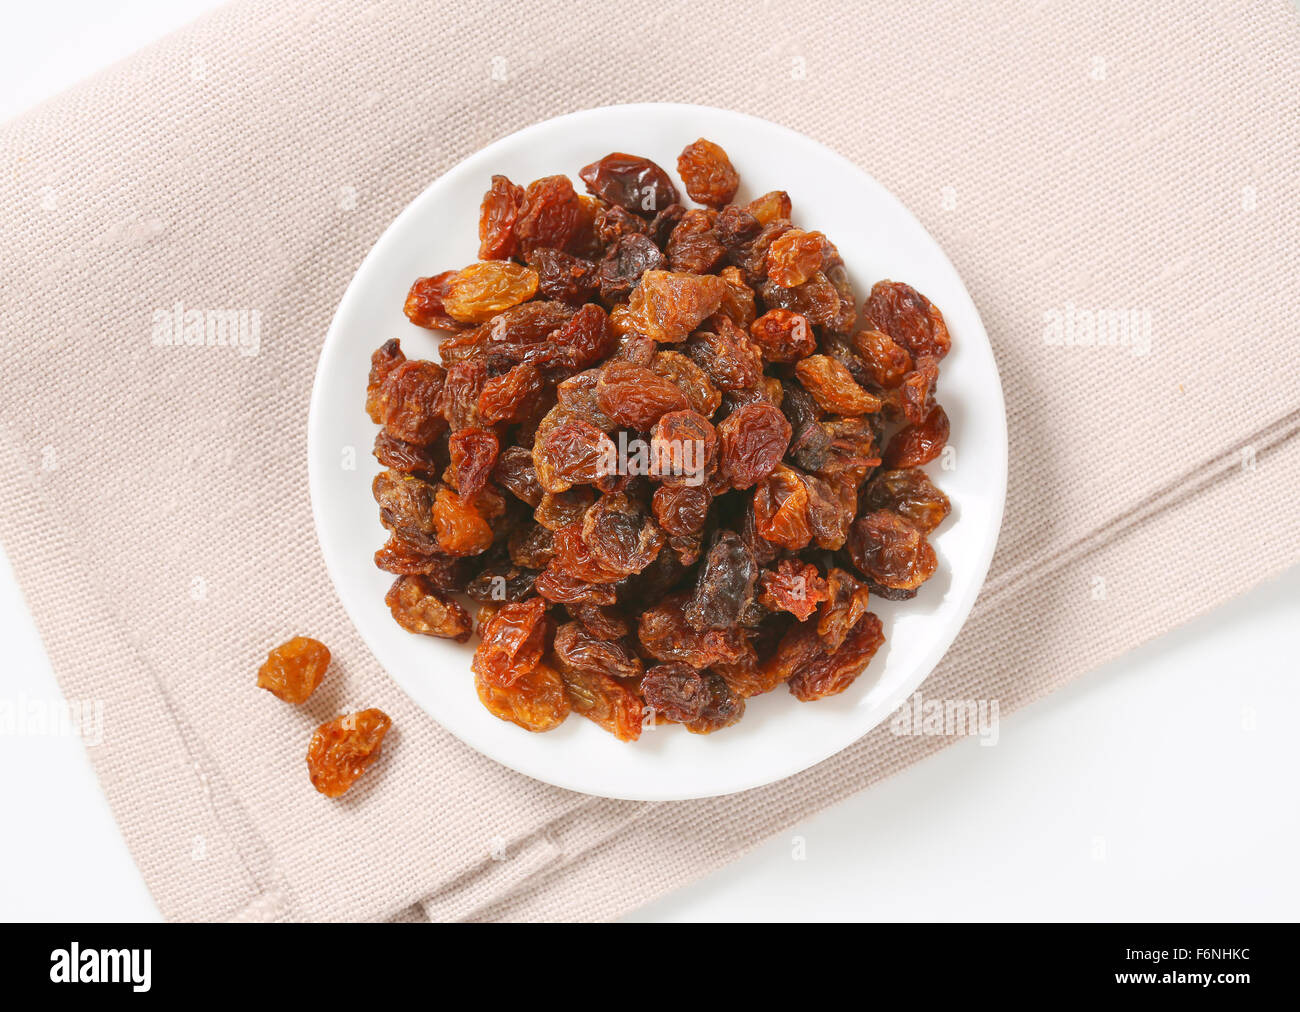 plate of raisins on beige place mat - Stock Image